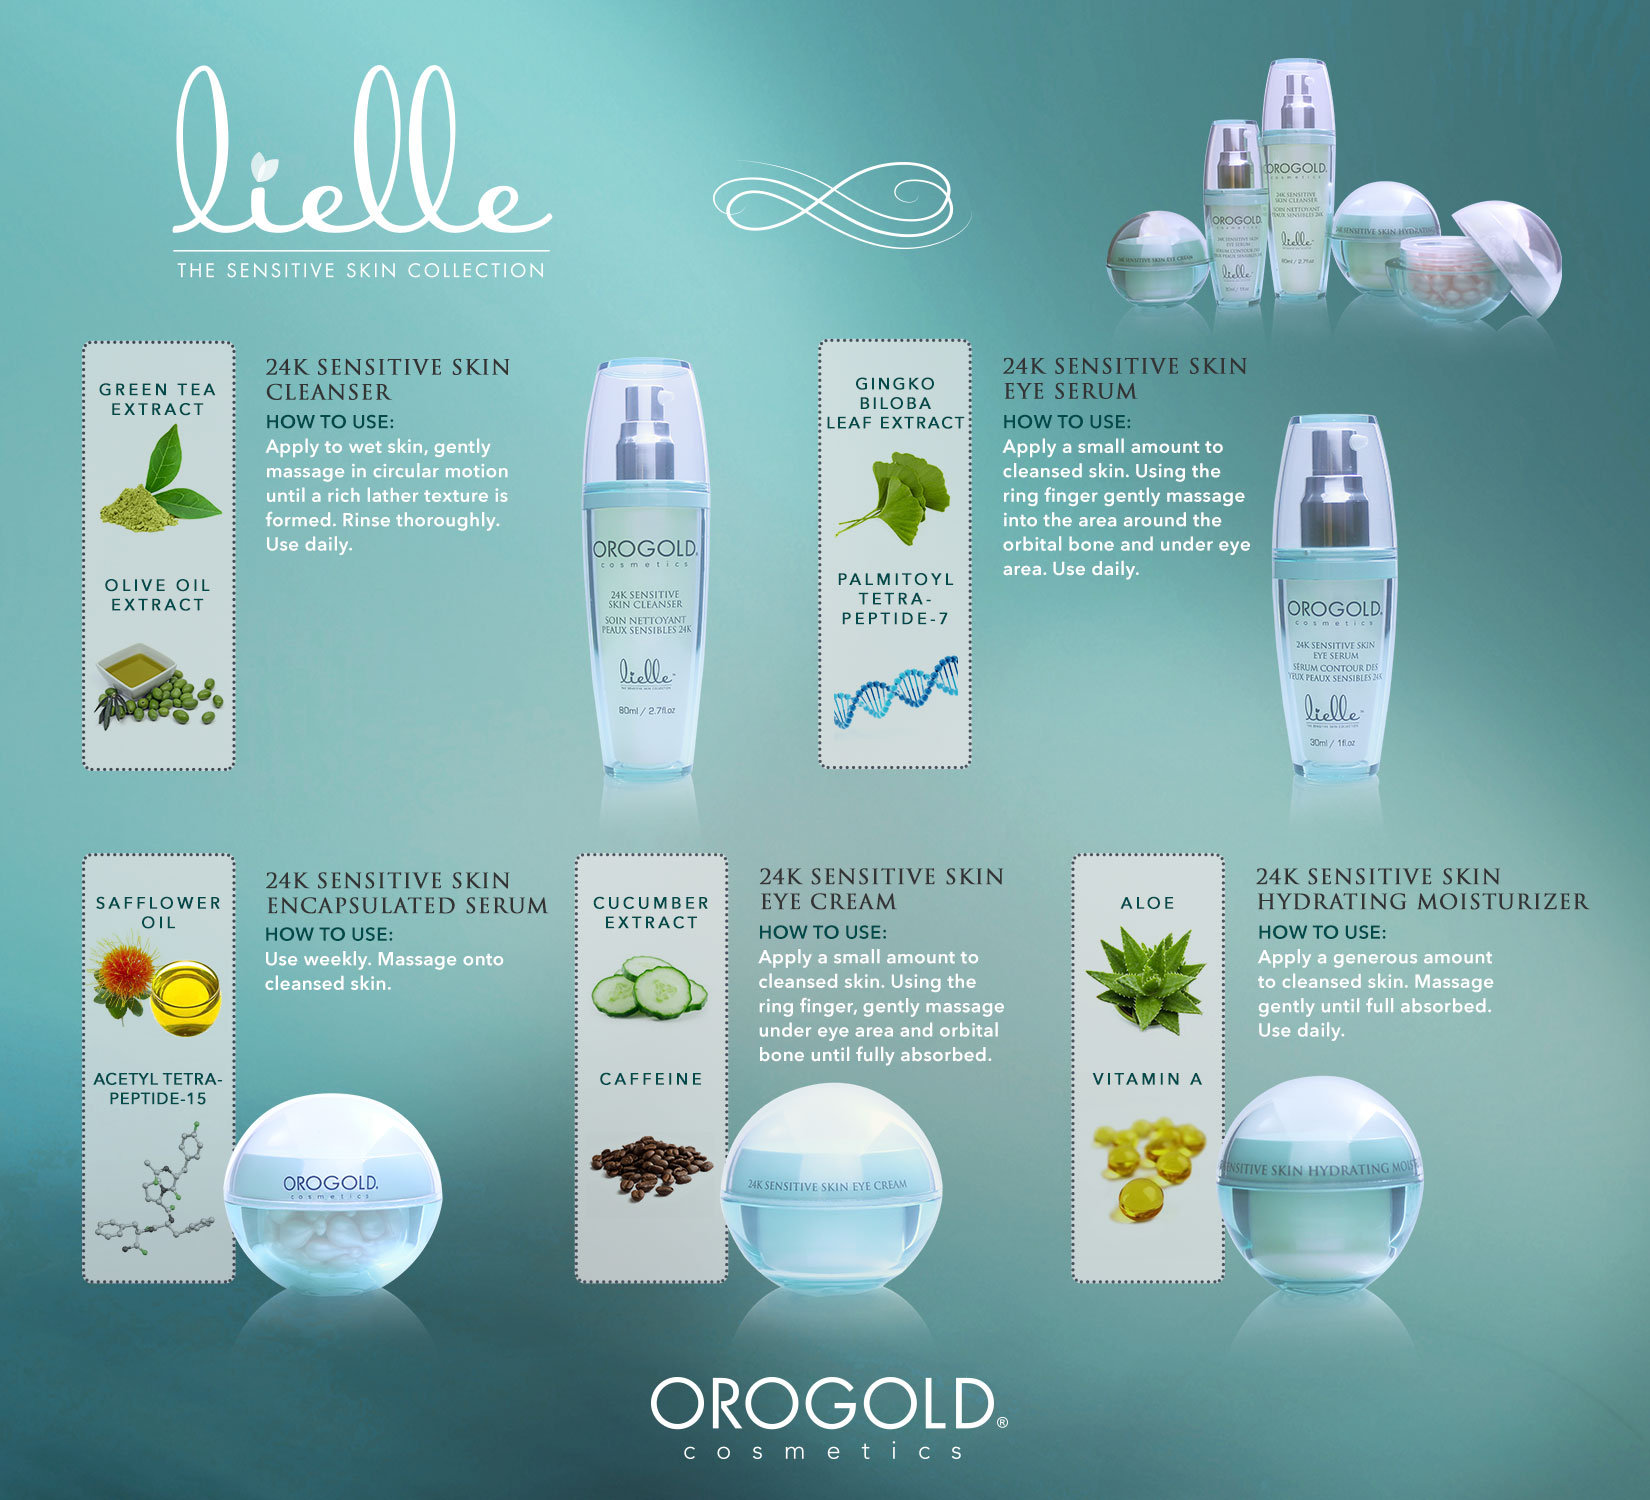 Orogold Lielle Sensitive Skin Collection infographic